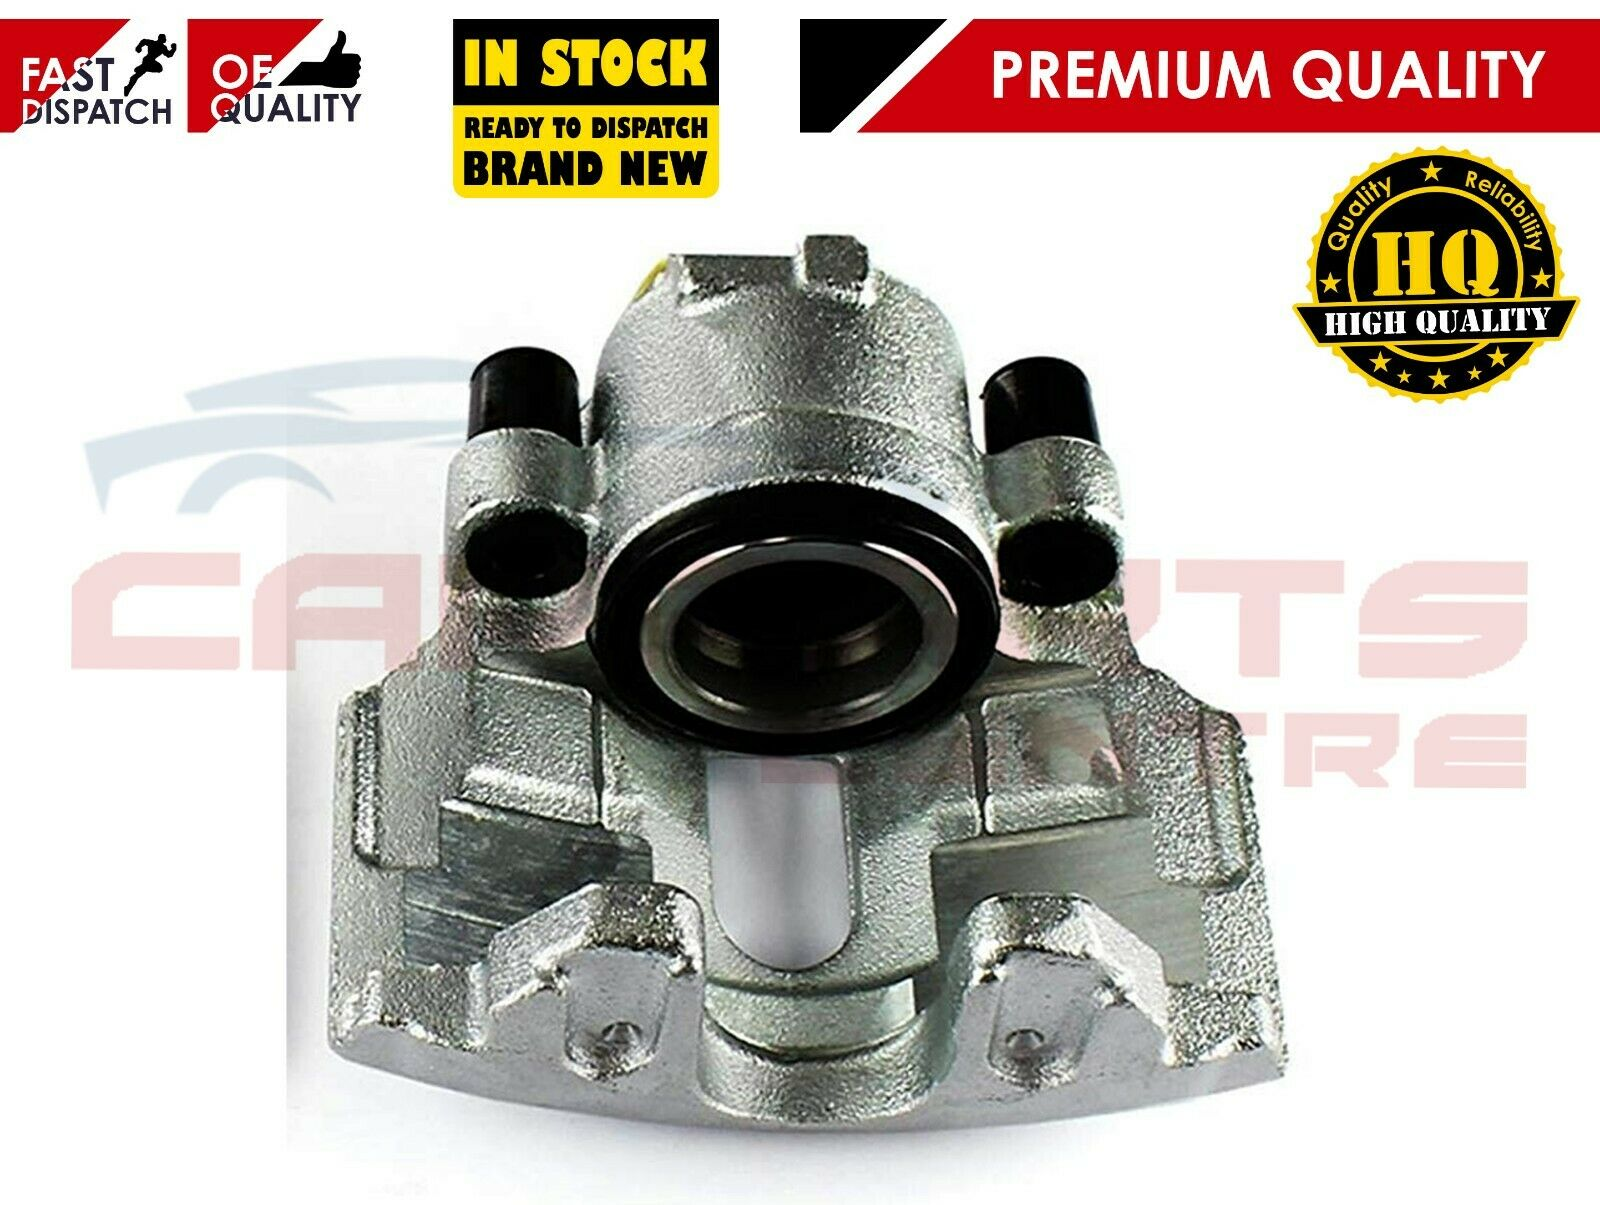 For A4 A6 Exeo Superb Passat Front Right Driver Side Brake Caliper NEW